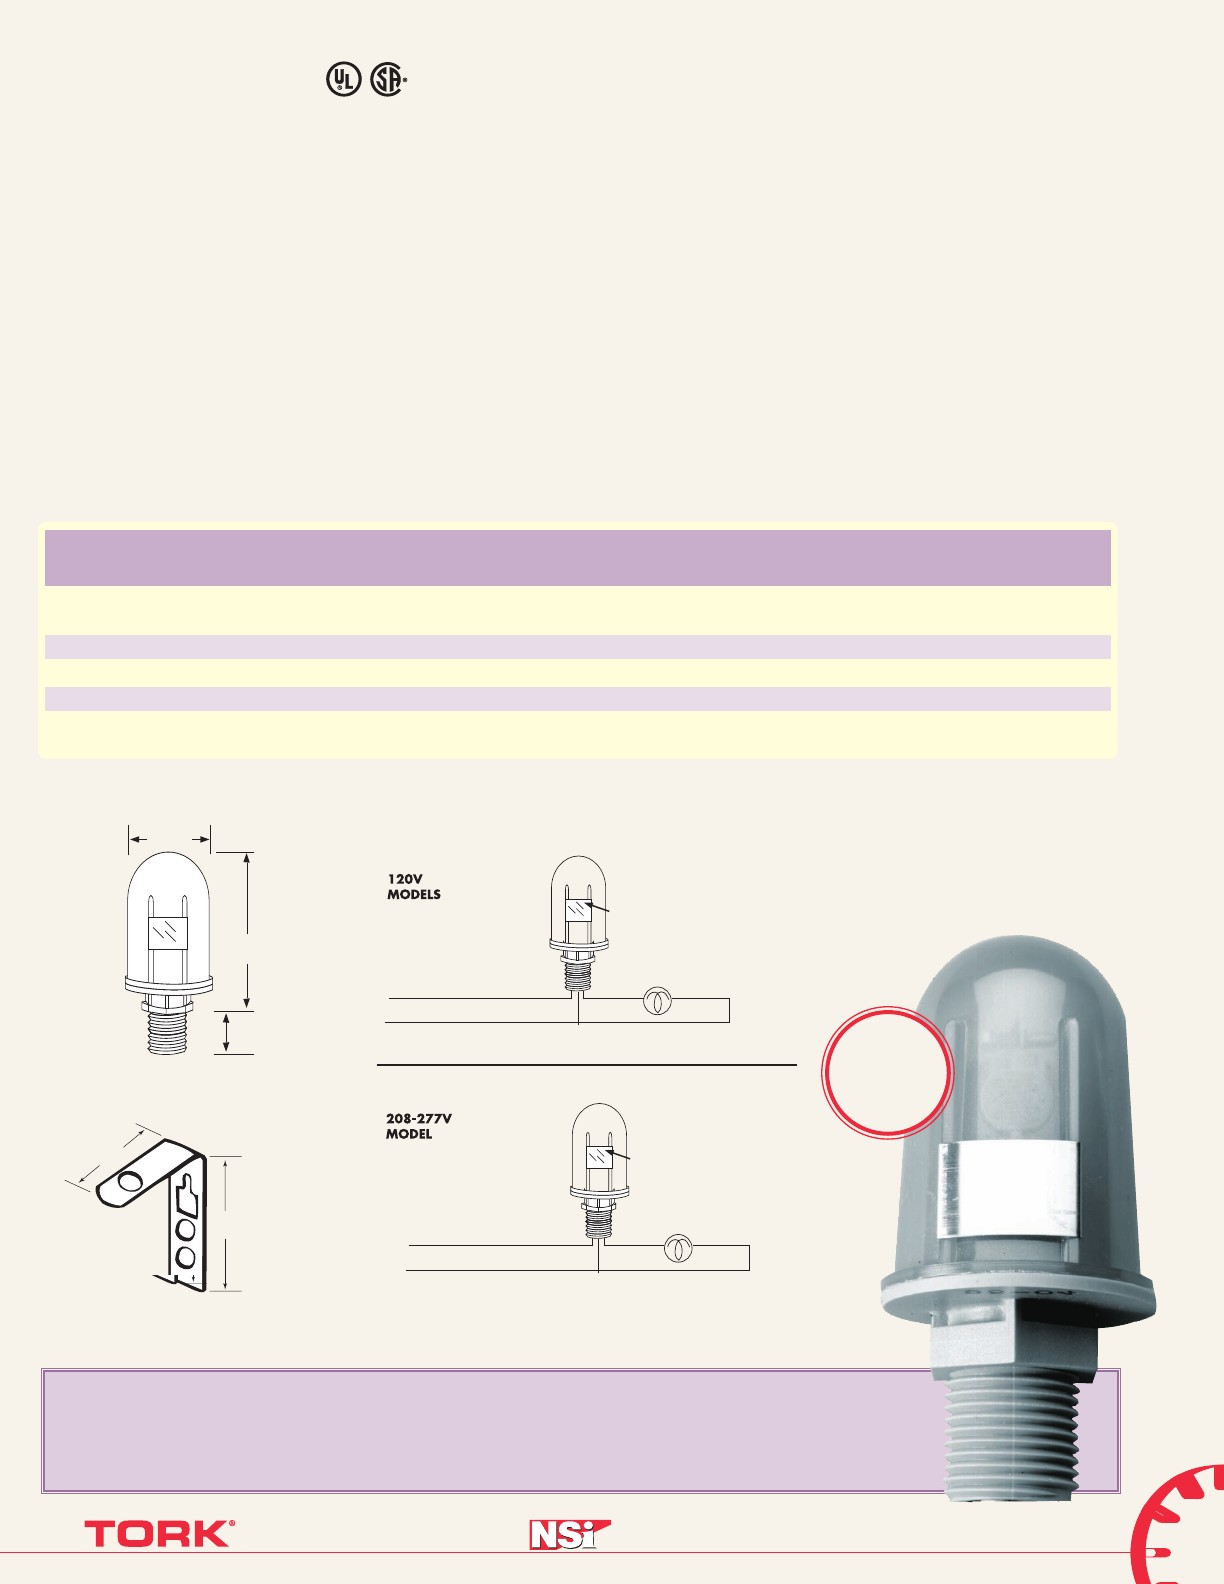 Tork Wiring Schematic for Lighting Contactor and Photocell Catalog Of Tork Wiring Schematic for Lighting Contactor and Photocell